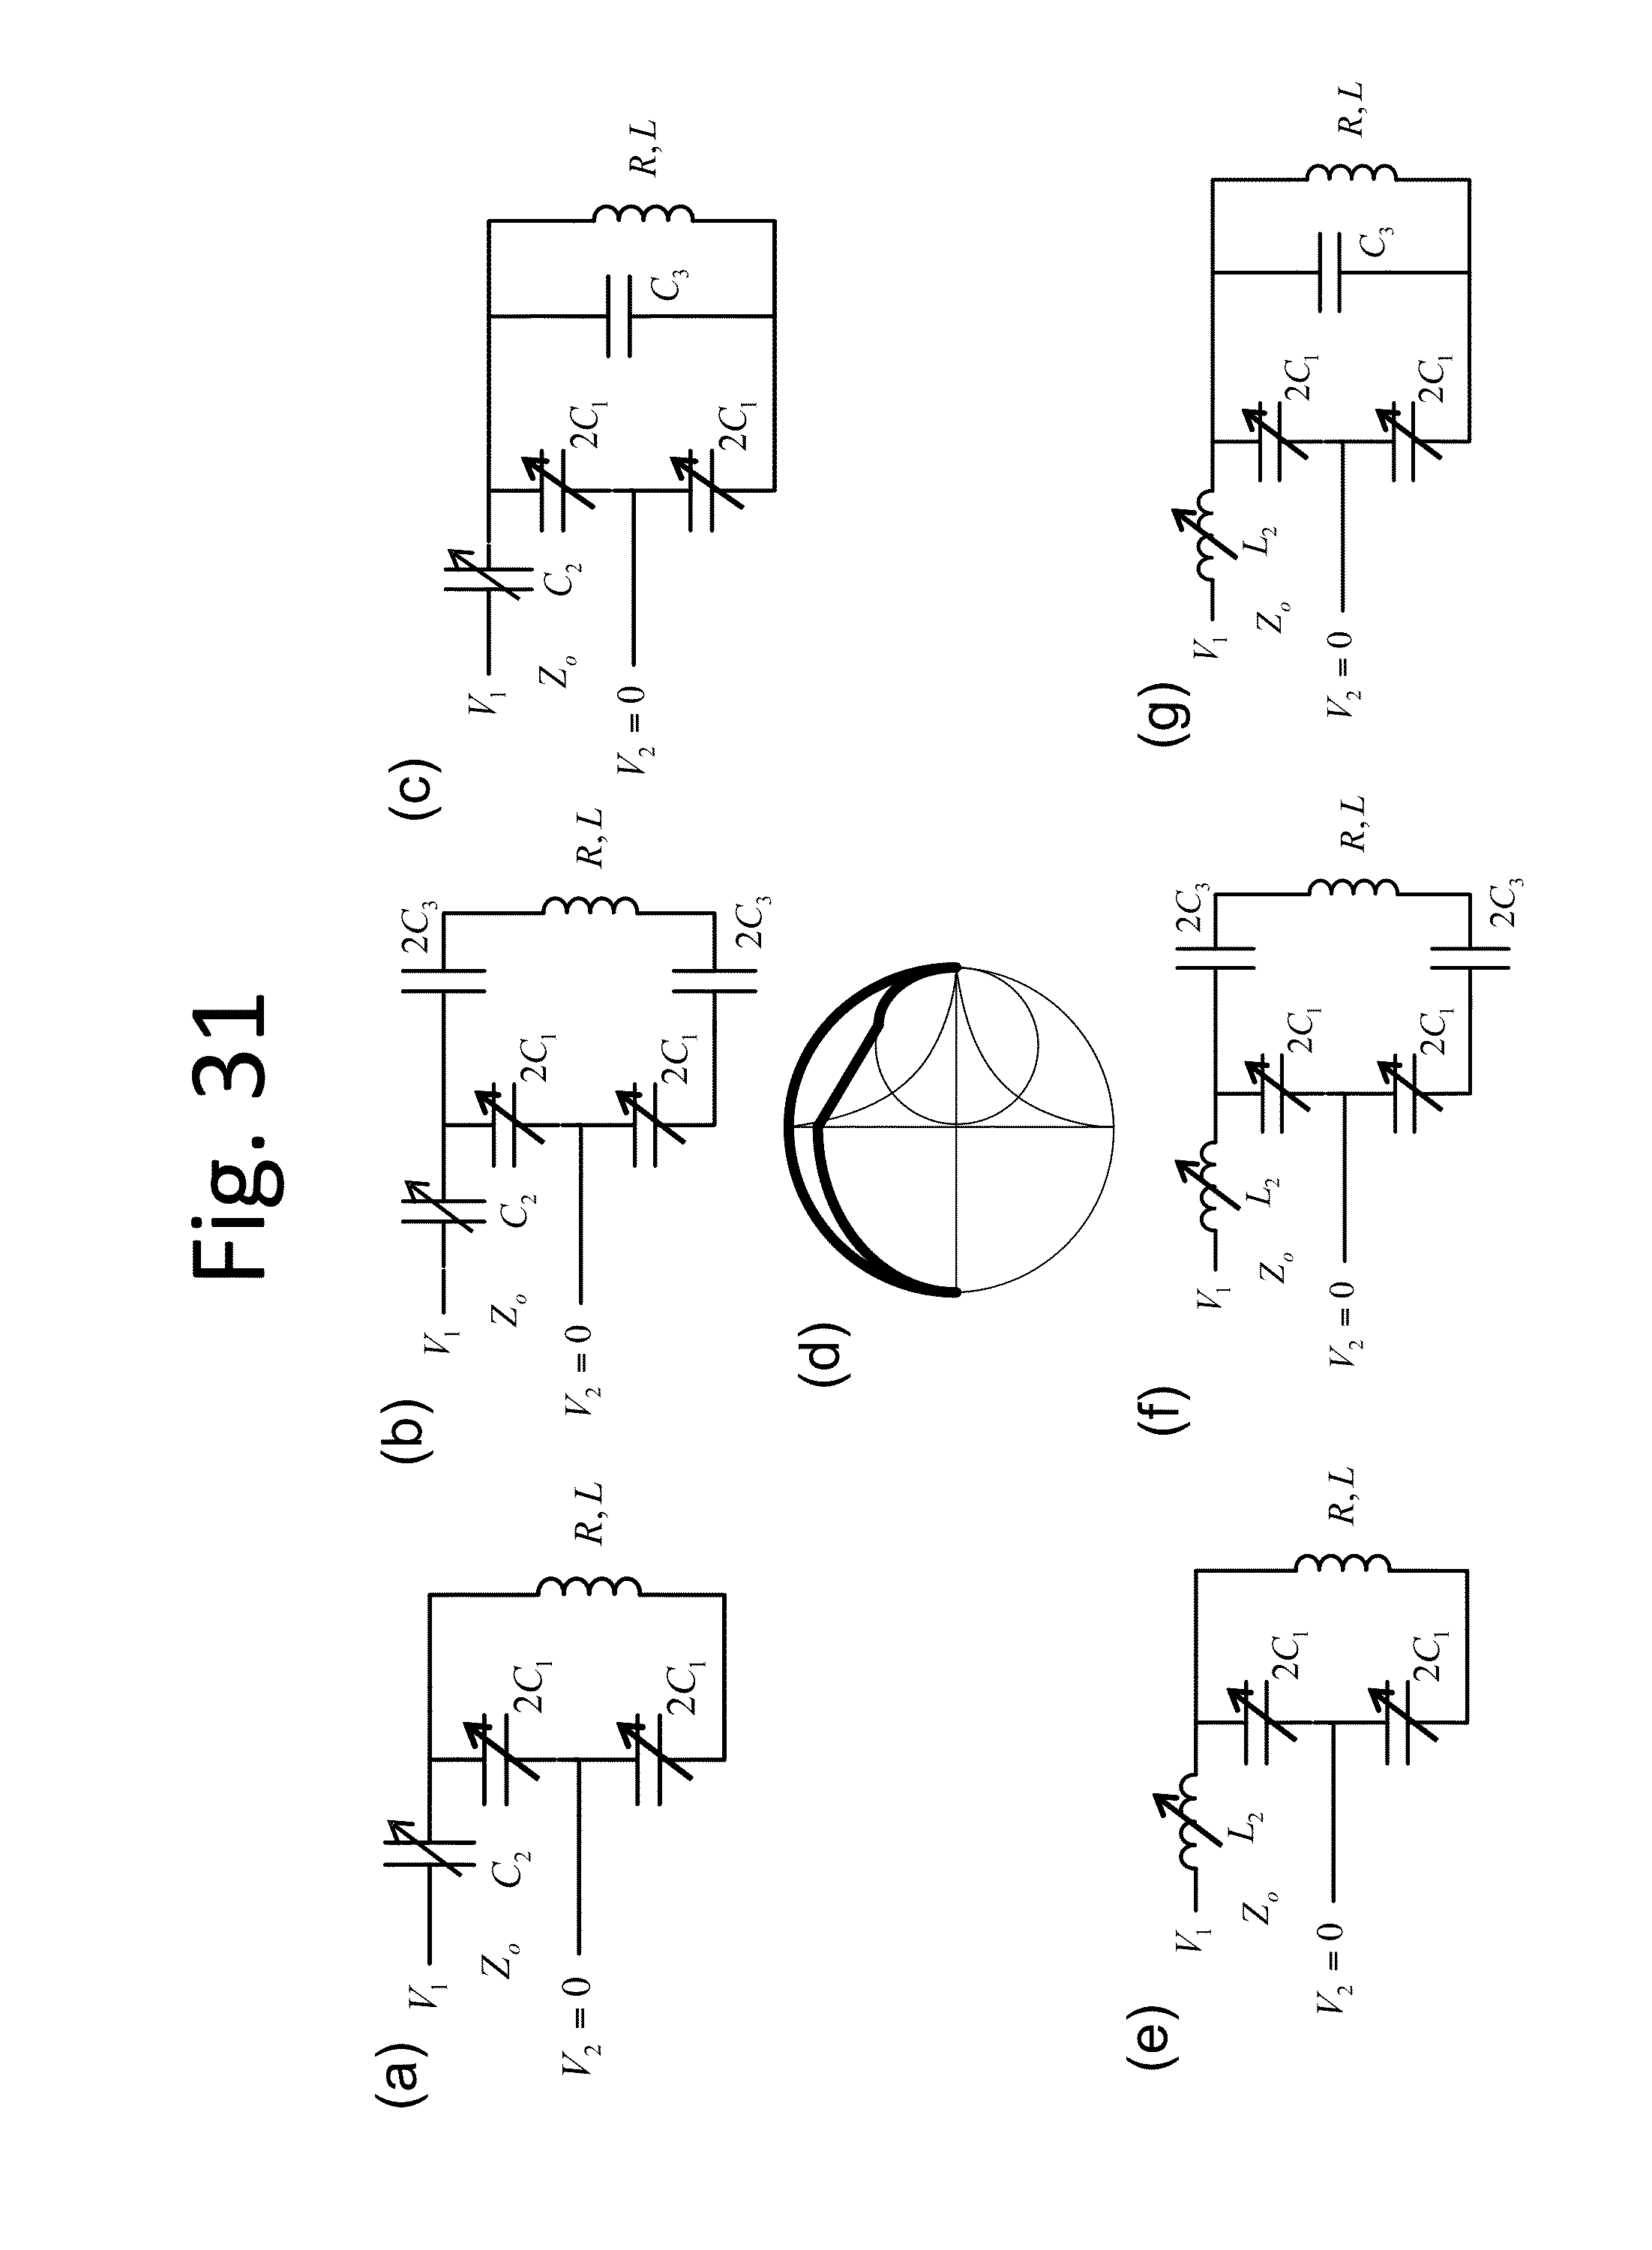 Patent Us8587153 Wireless Energy Transfer Using High Q Resonators Doorbell Cascade Electronic Schematics Drawing